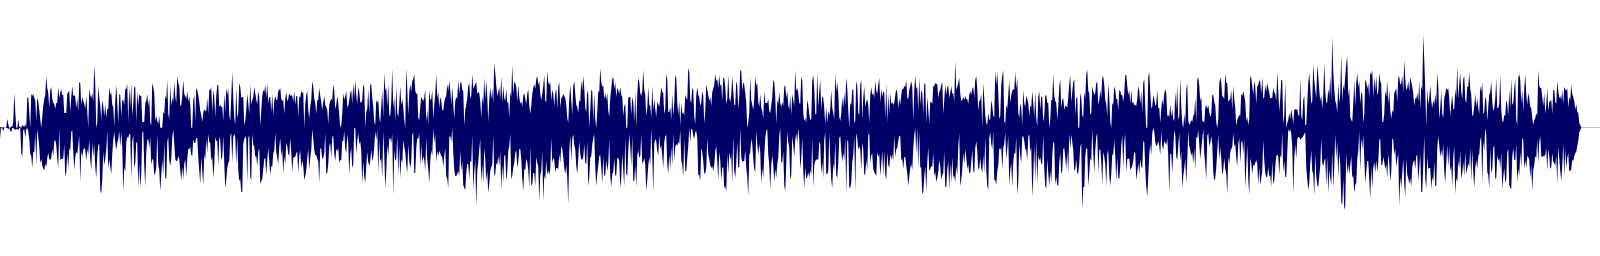 waveform of track #111034